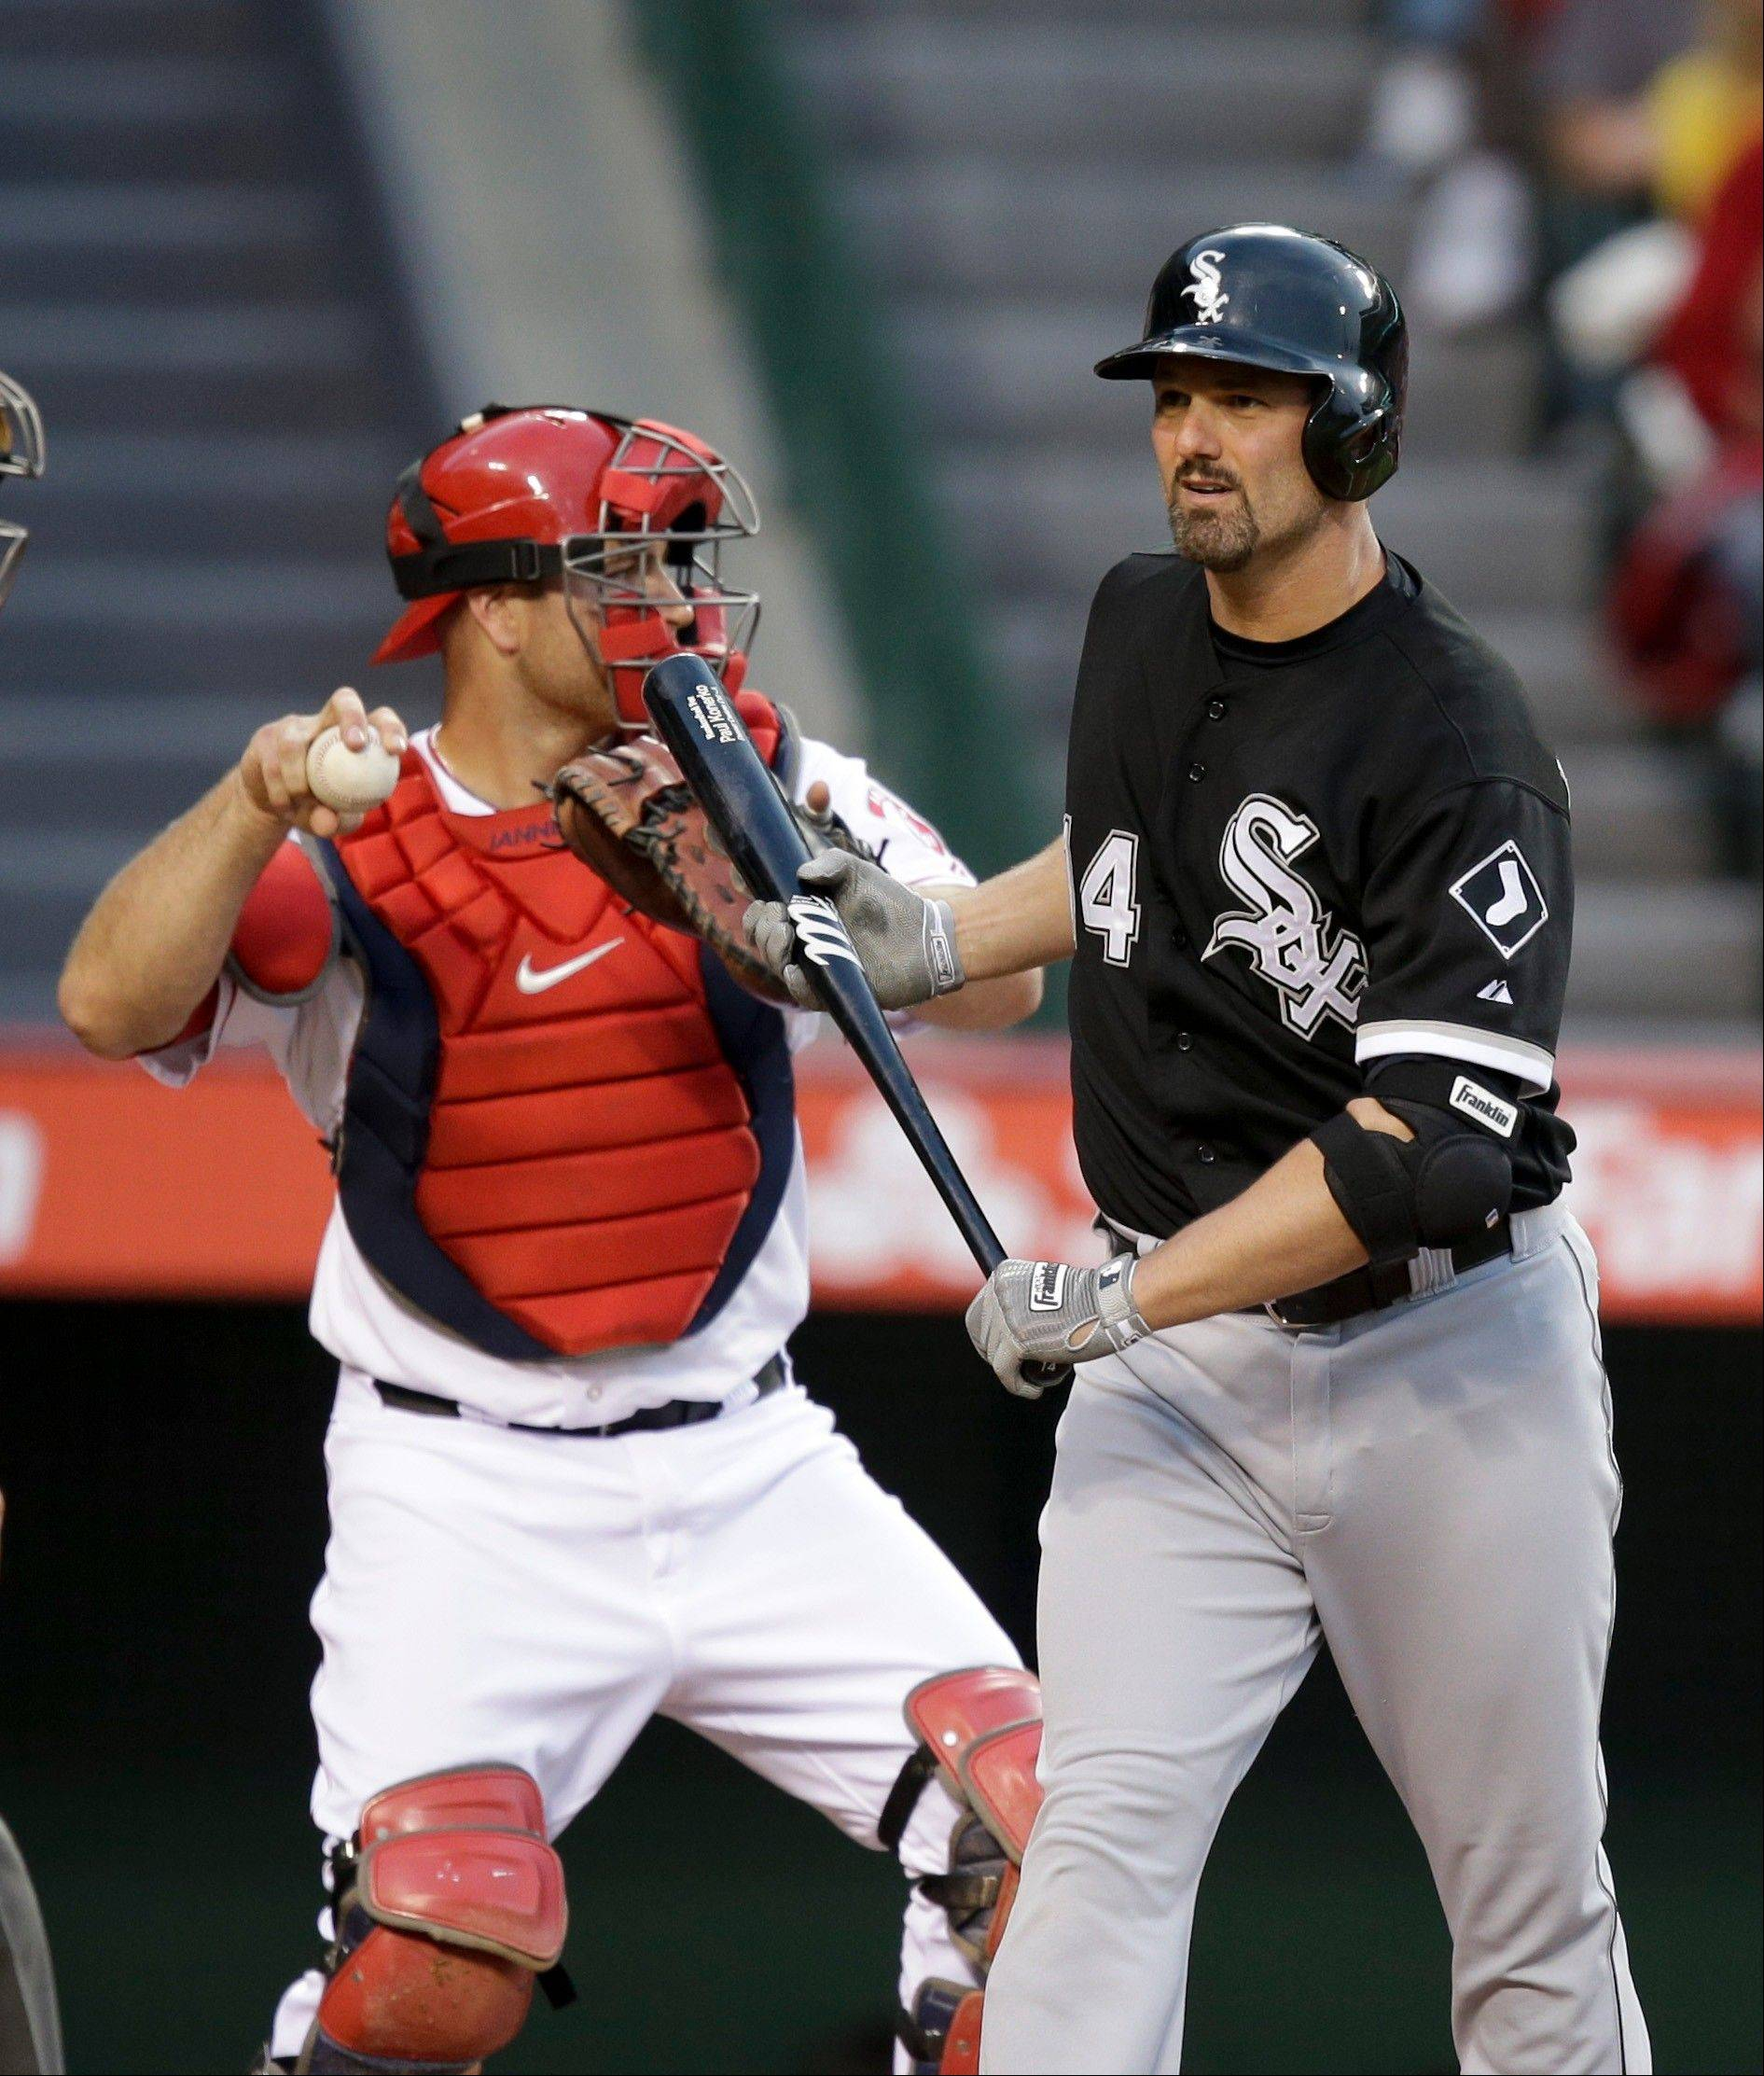 The White Sox� Paul Konerko reacts after striking out against the Angels during the just-completed weekend series.